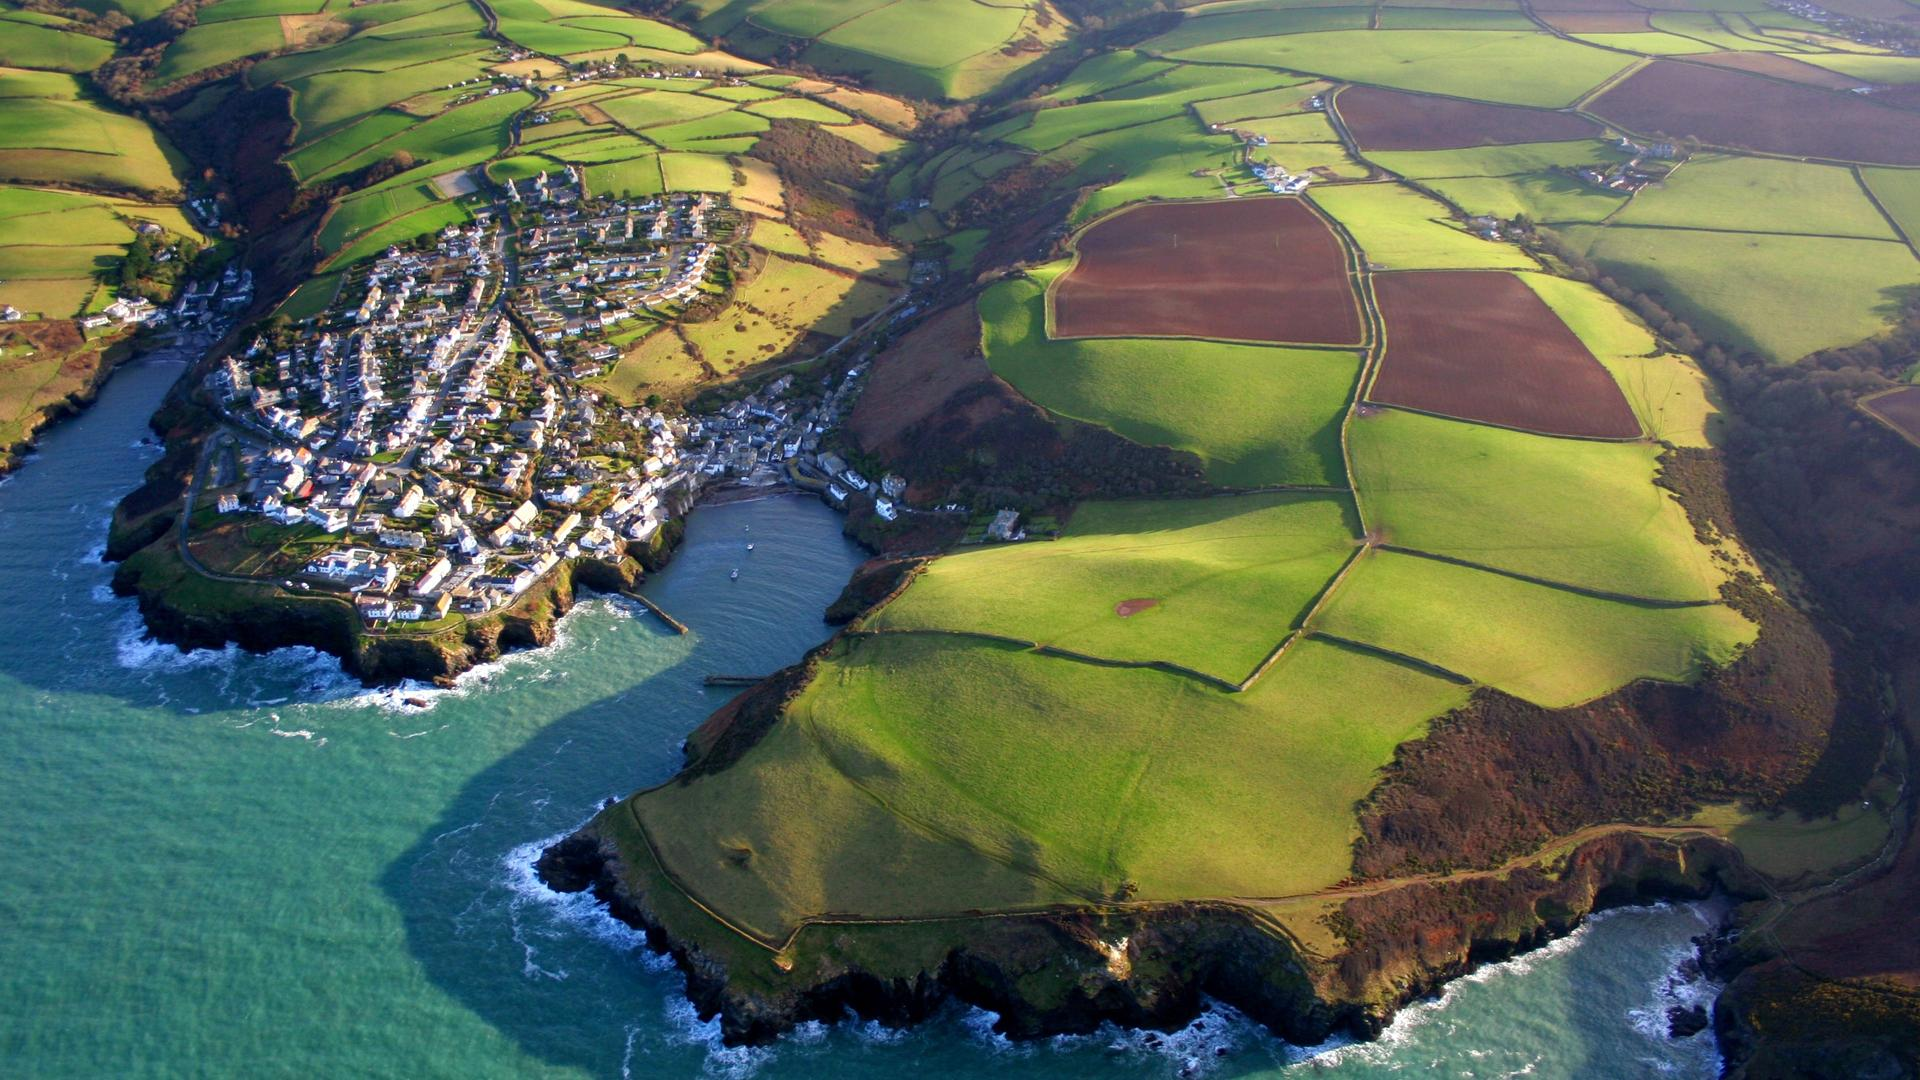 Fantastic village of port isaac in england HQ WALLPAPER - (#136319)